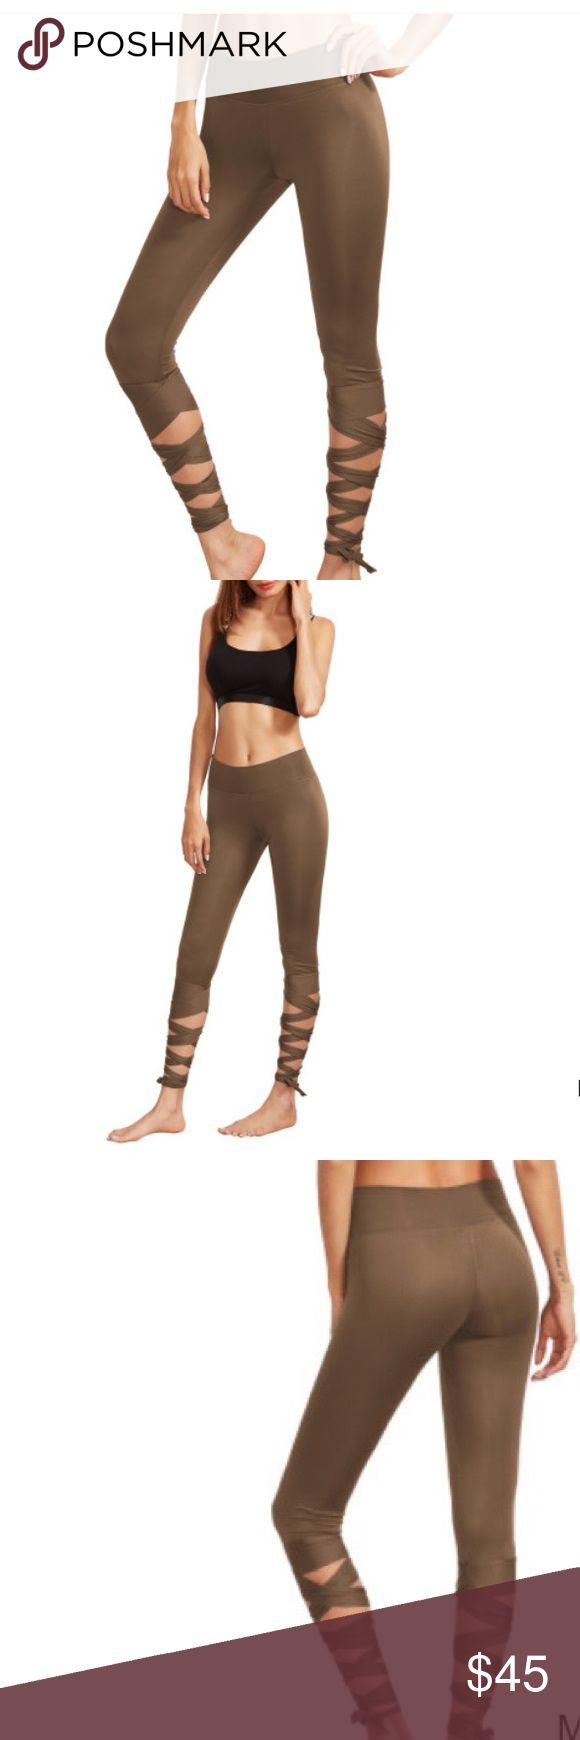 Asos Medium/high waisted legging w ties activewear Size xsmall and perfect condition brand new never worn. Asos. Coffee color . Spandex blend. Ties are adjustable ASOS Pants Leggings